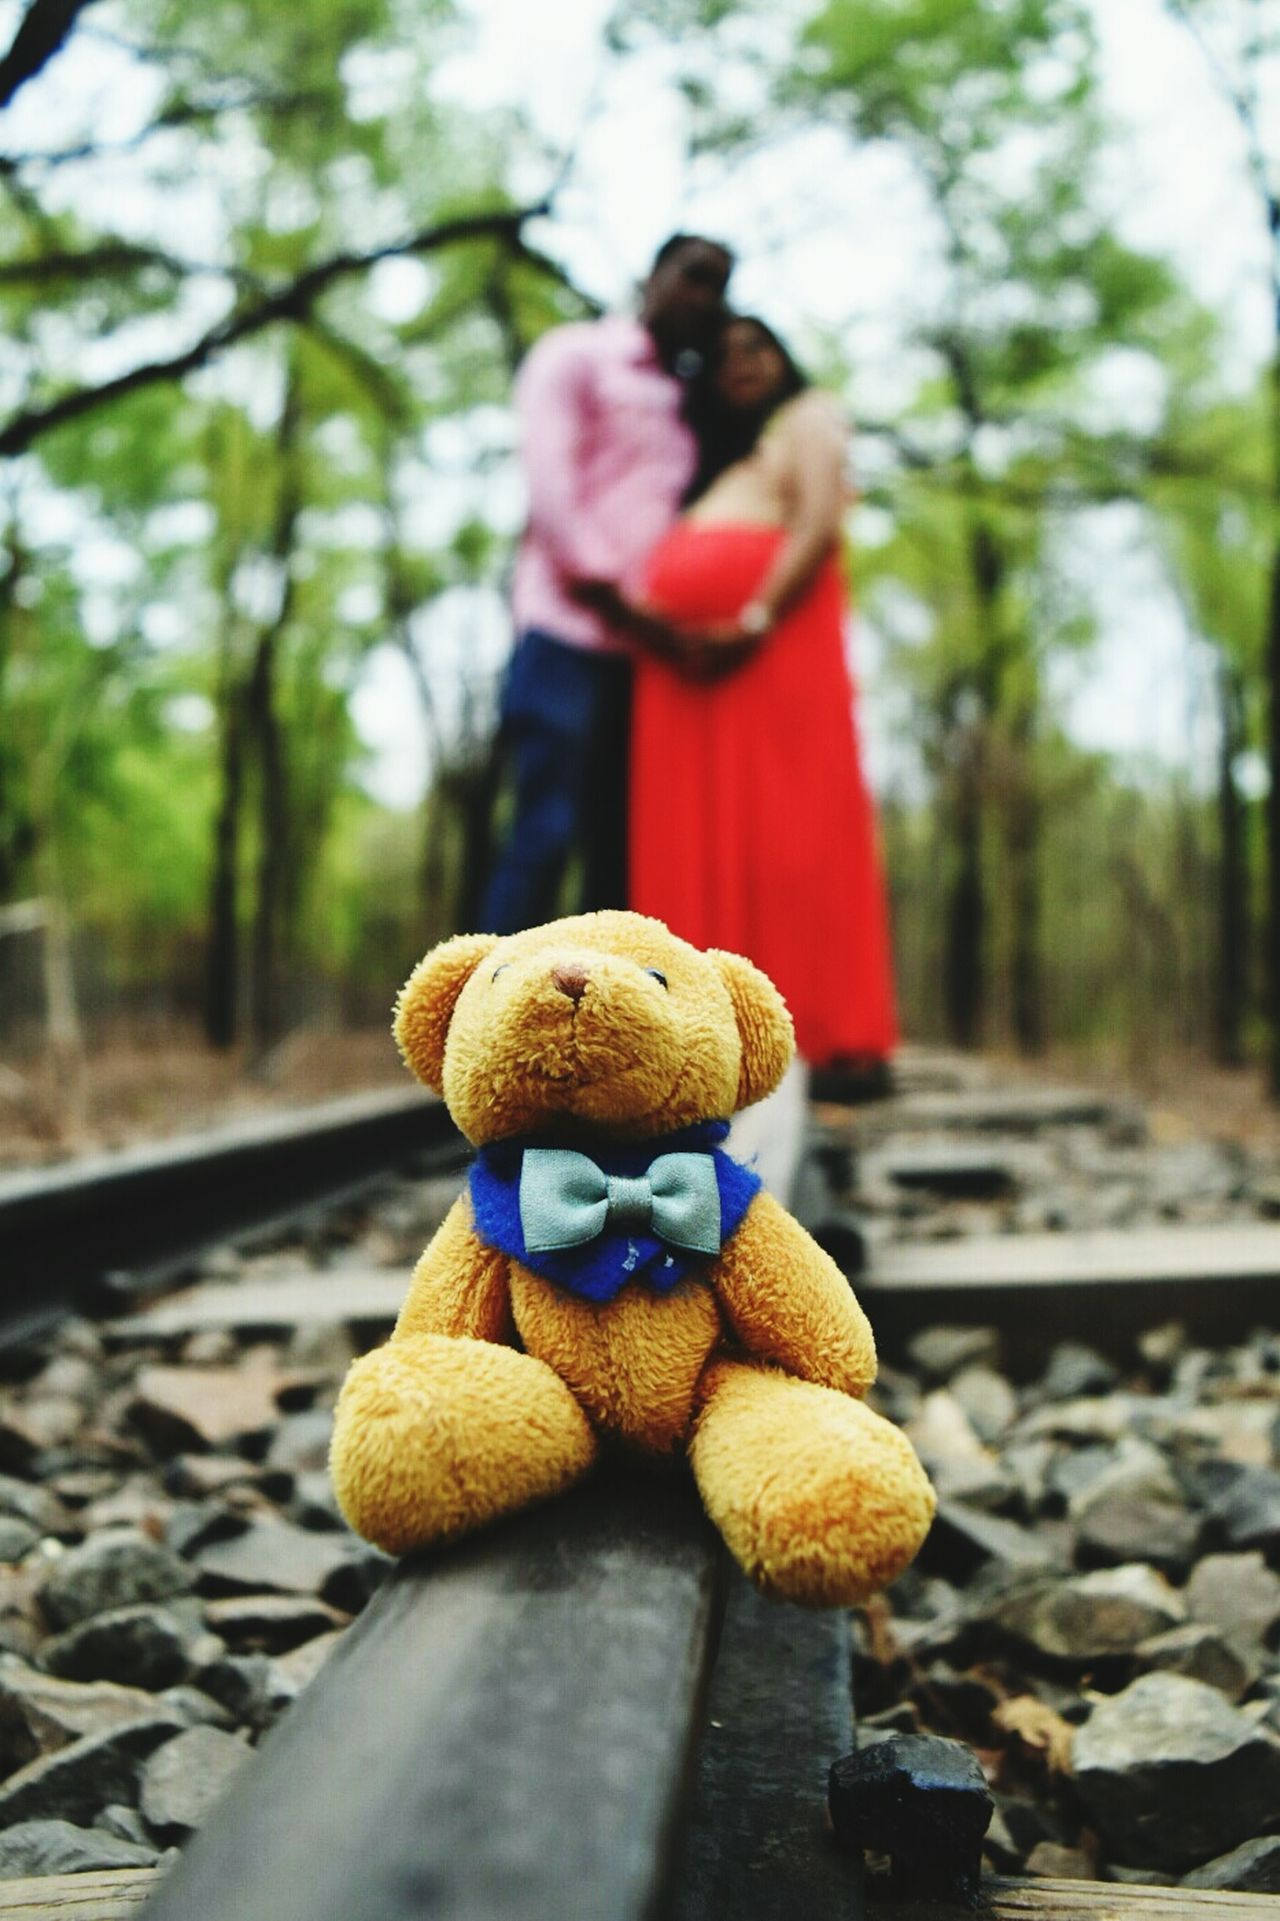 Maternity Shoot Teddy Lifeisgood Enjoying Life Hanging Out Taking Photos Check This Out Hello World Cheese! Relaxing 2016 EyeEm Awards Market Reviewers' Top Picks The Essence Of Summer The Great Outdoors - 2016 EyeEm Awards India The Great Outdoors With Adobe Moment Captures Click Click 📷📷📷 EyeEm Nature Lover Colourful Yellow Enjoying Life The Portraitist - 2016 EyeEm Awards Dramatic Angles